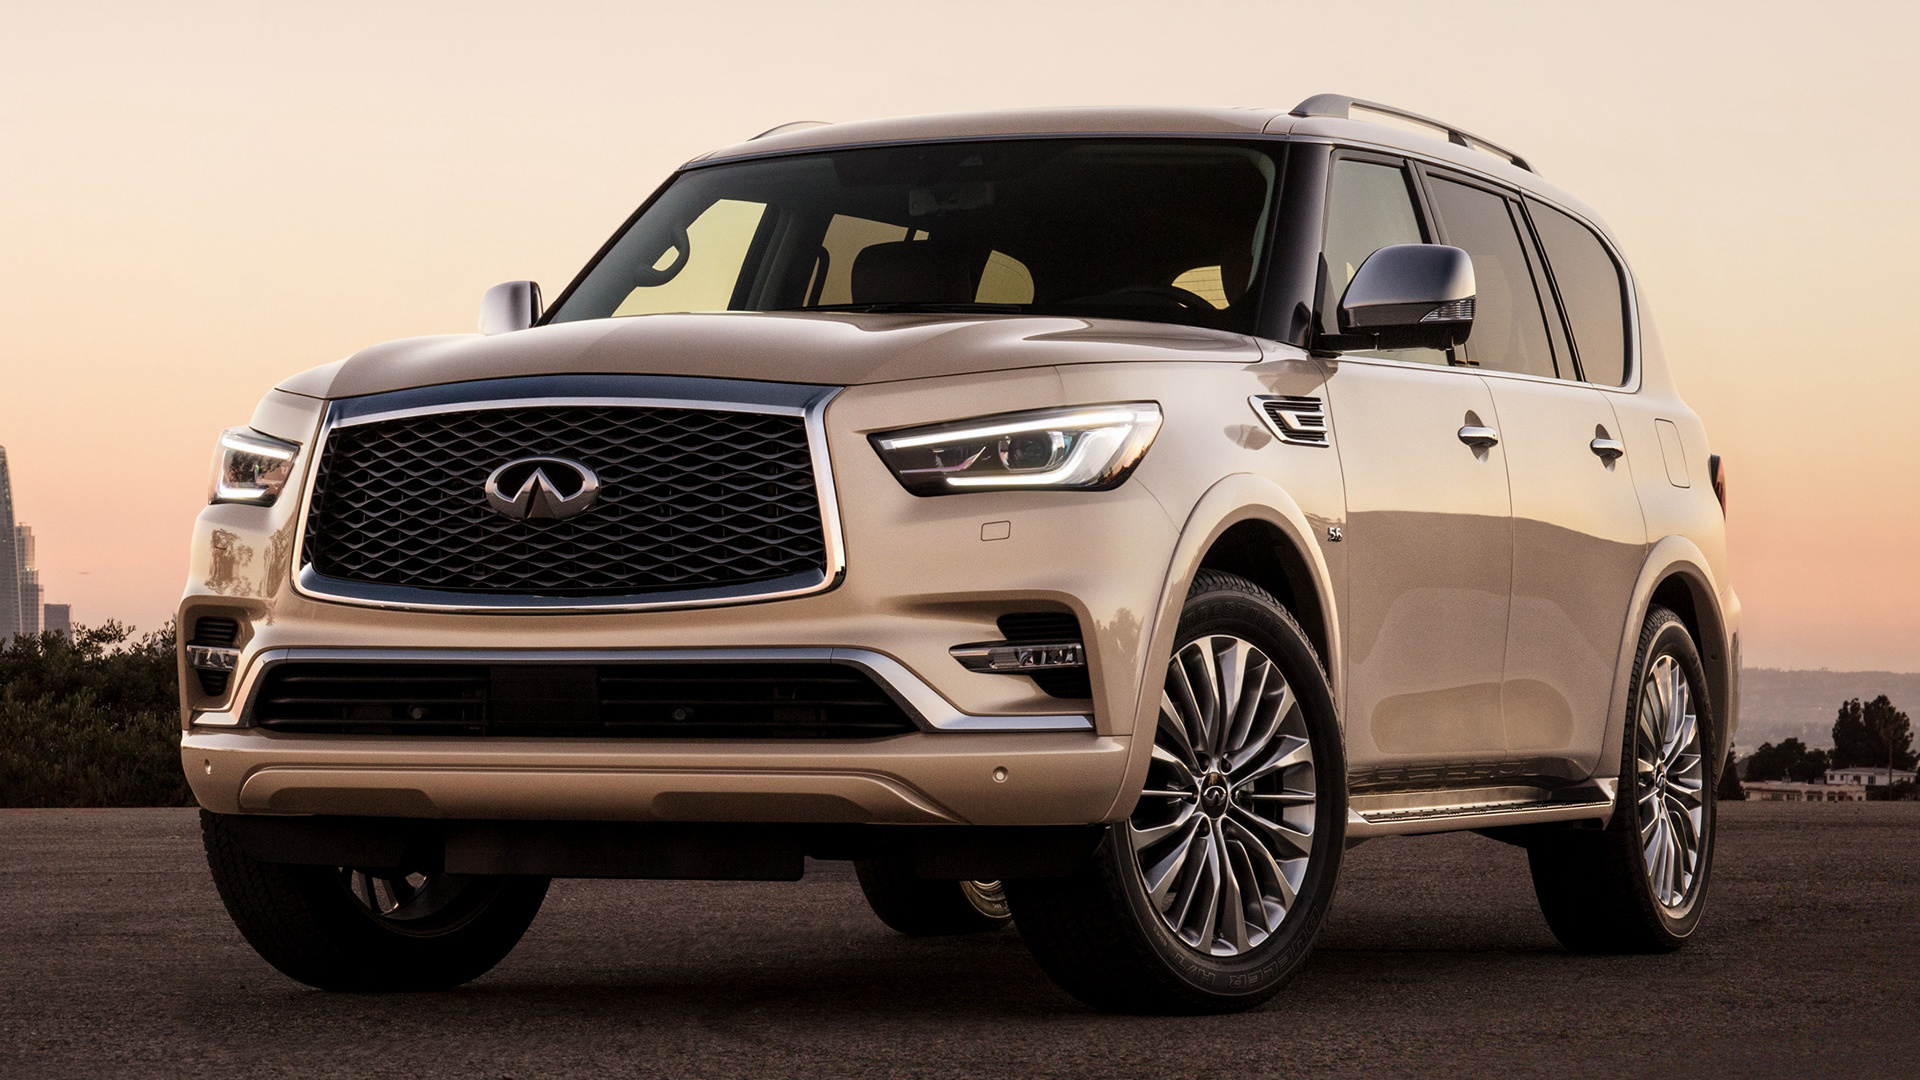 1920x1080 - Infiniti QX80 Wallpapers 9